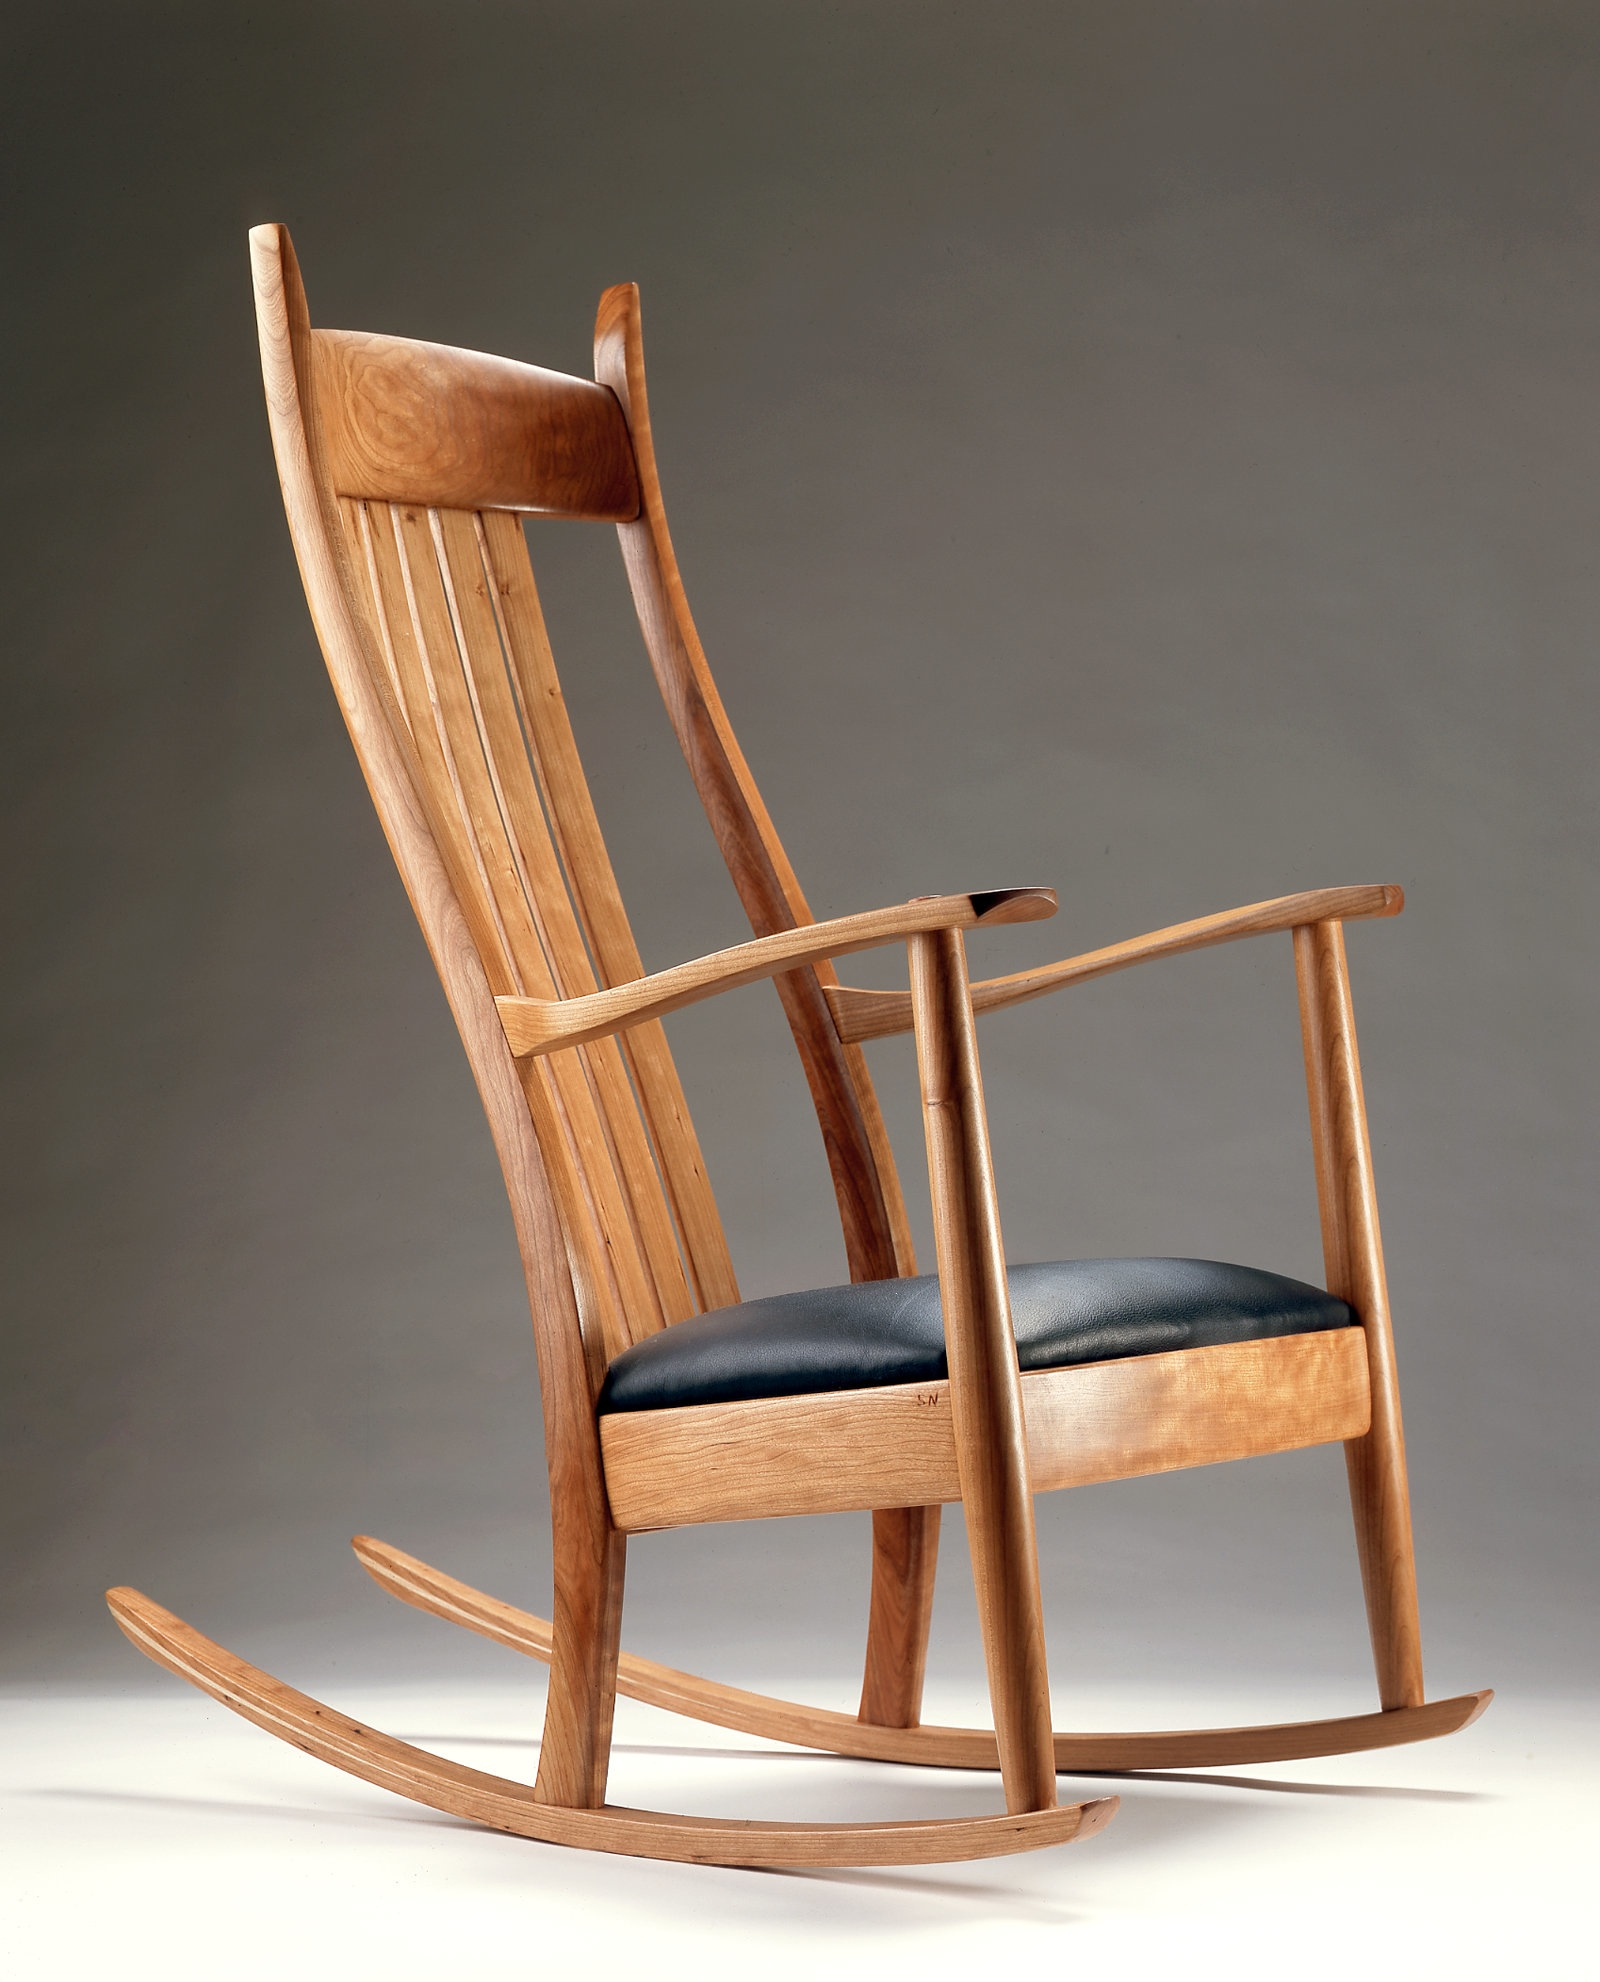 Stuart Rocking Chair